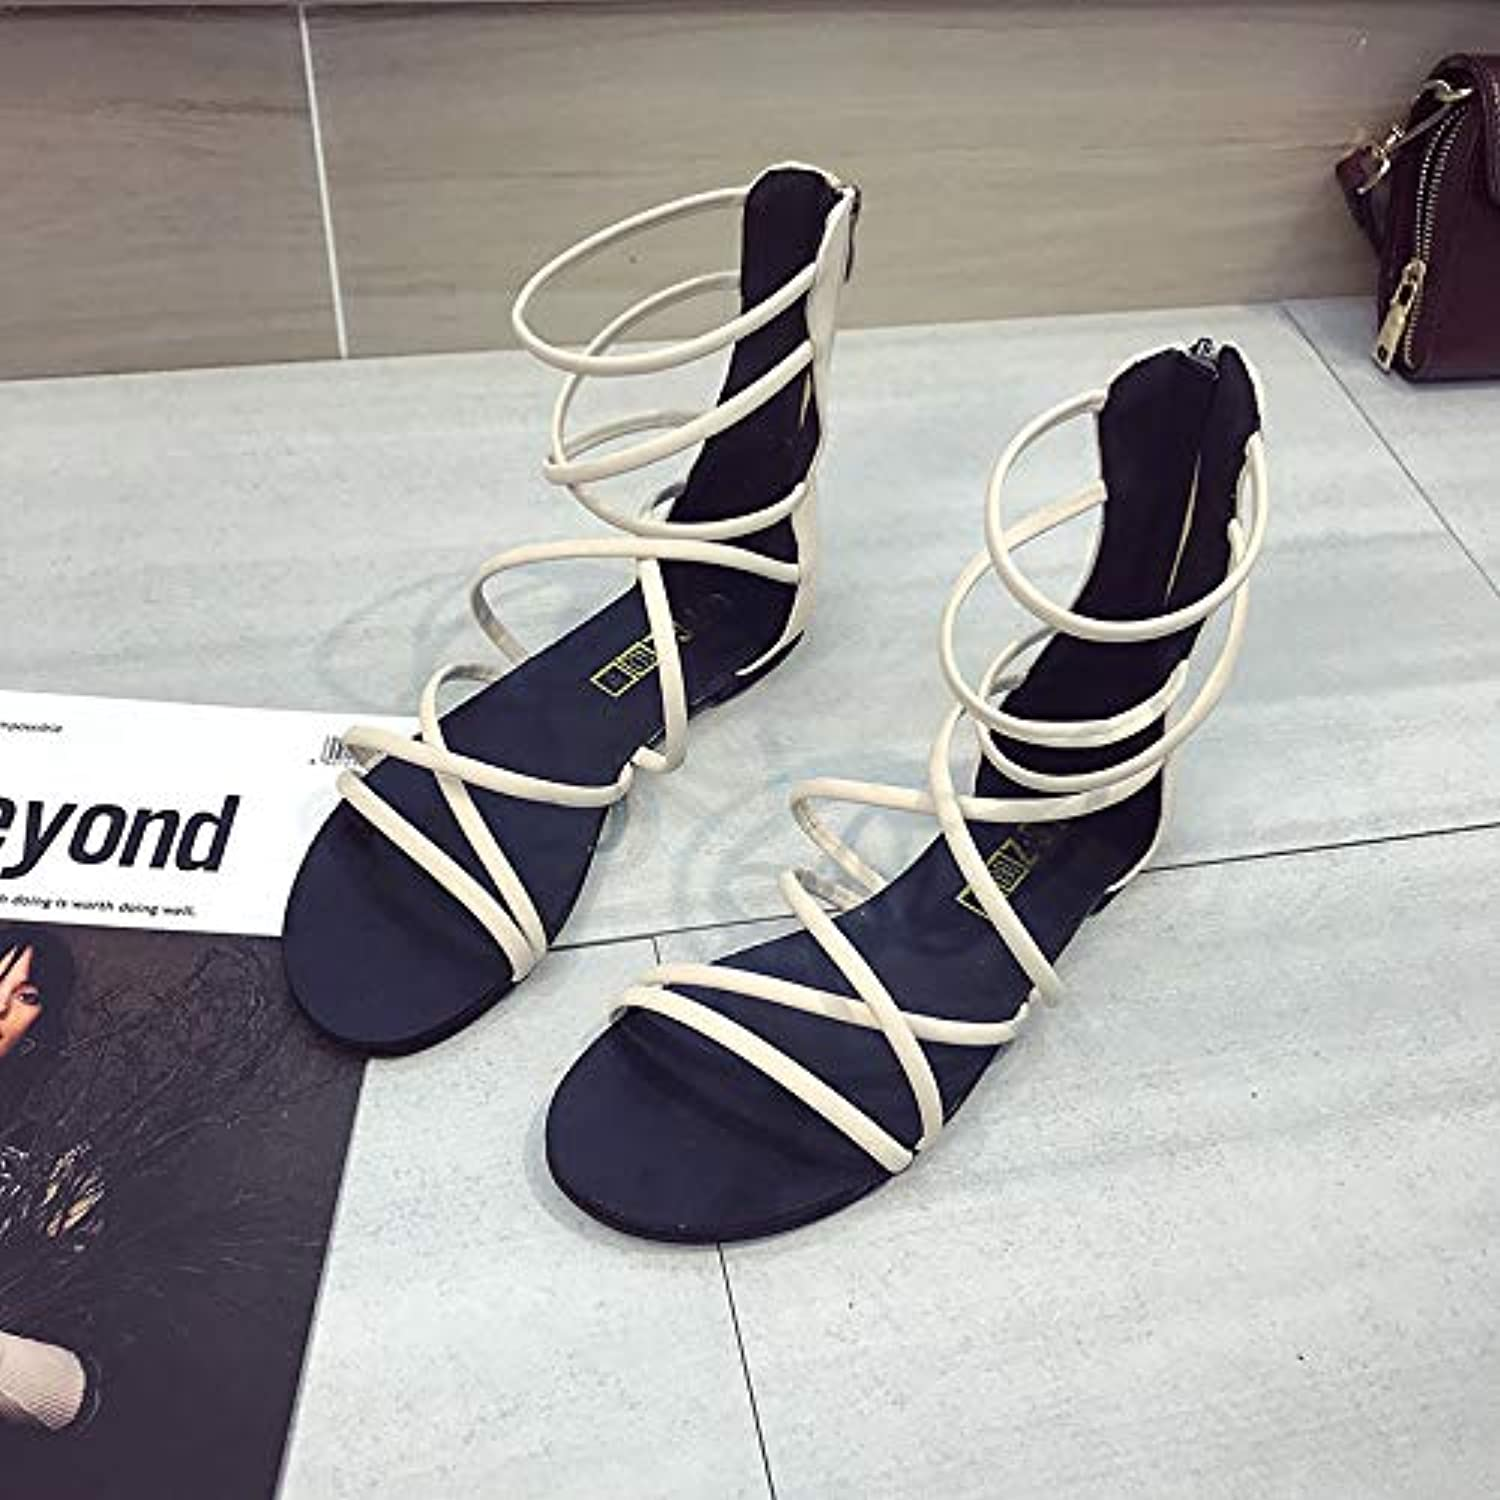 Summer New Sandals Europe and The United States Open Toe Flat Foot Ring Straps Back Zipper Female Bohemian Sandals,B,US6 EU36 UK4 CN36